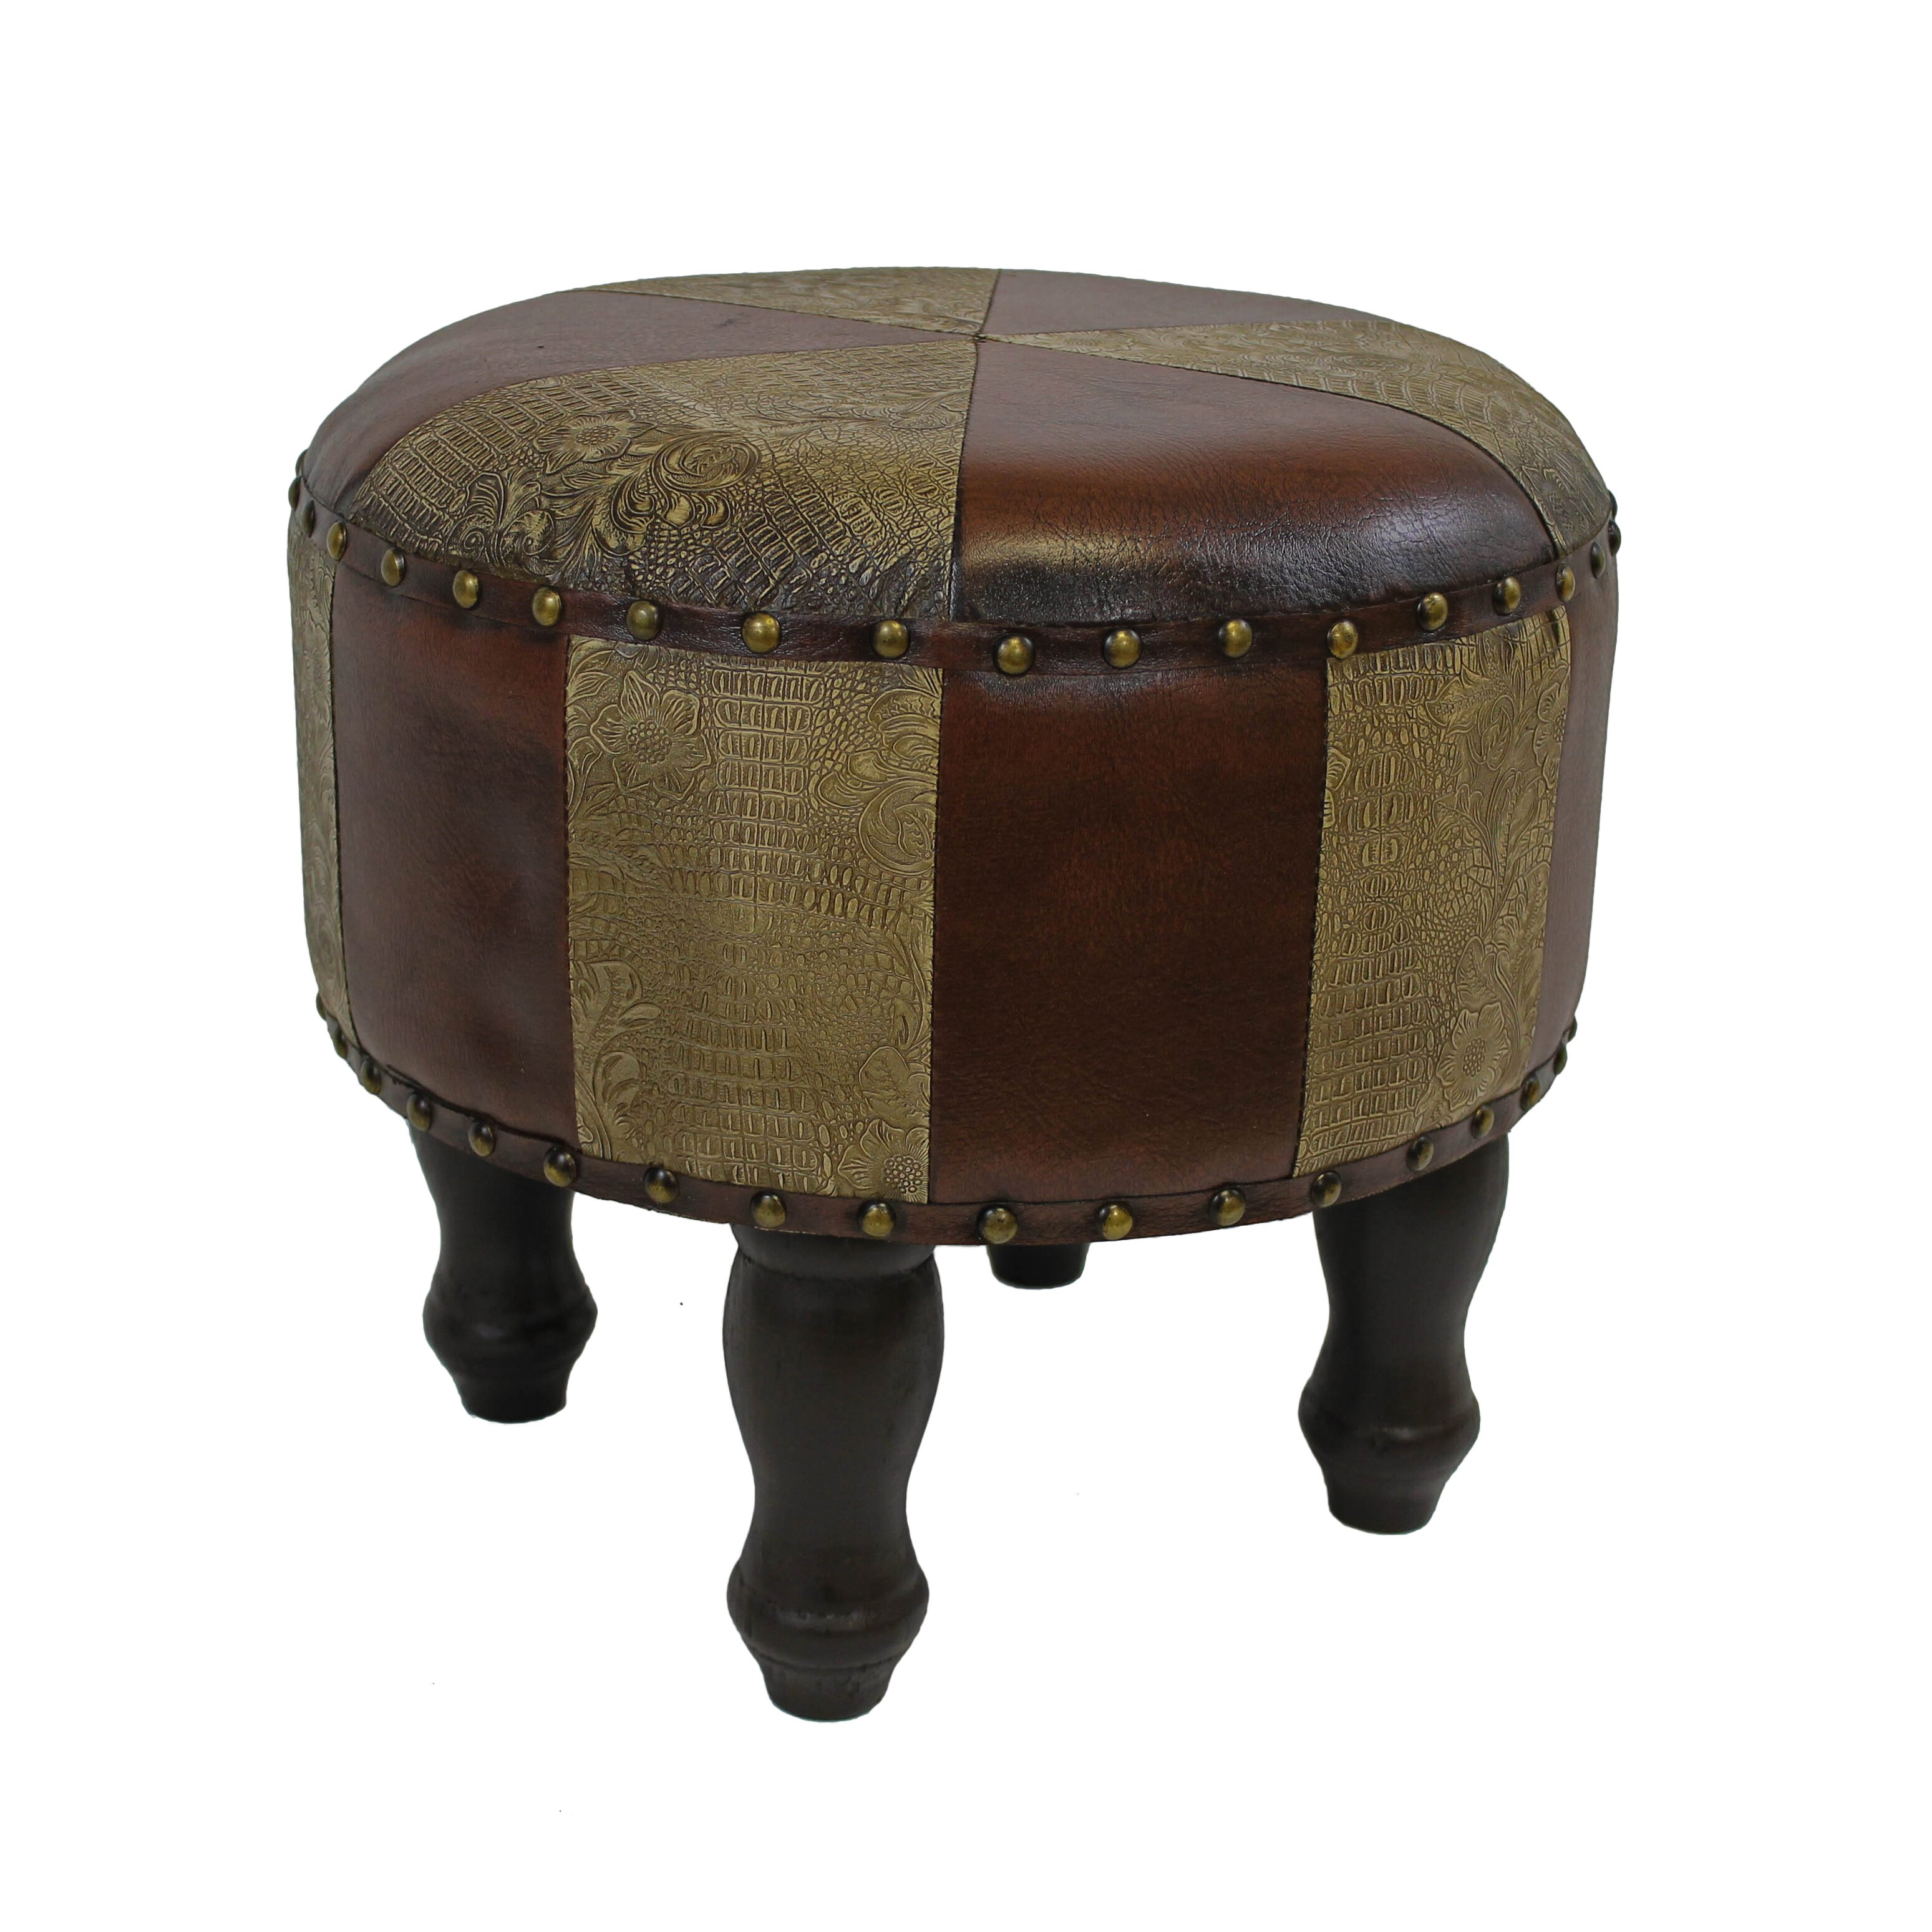 astoria grand stone castle 15 round ottoman reviews. Black Bedroom Furniture Sets. Home Design Ideas